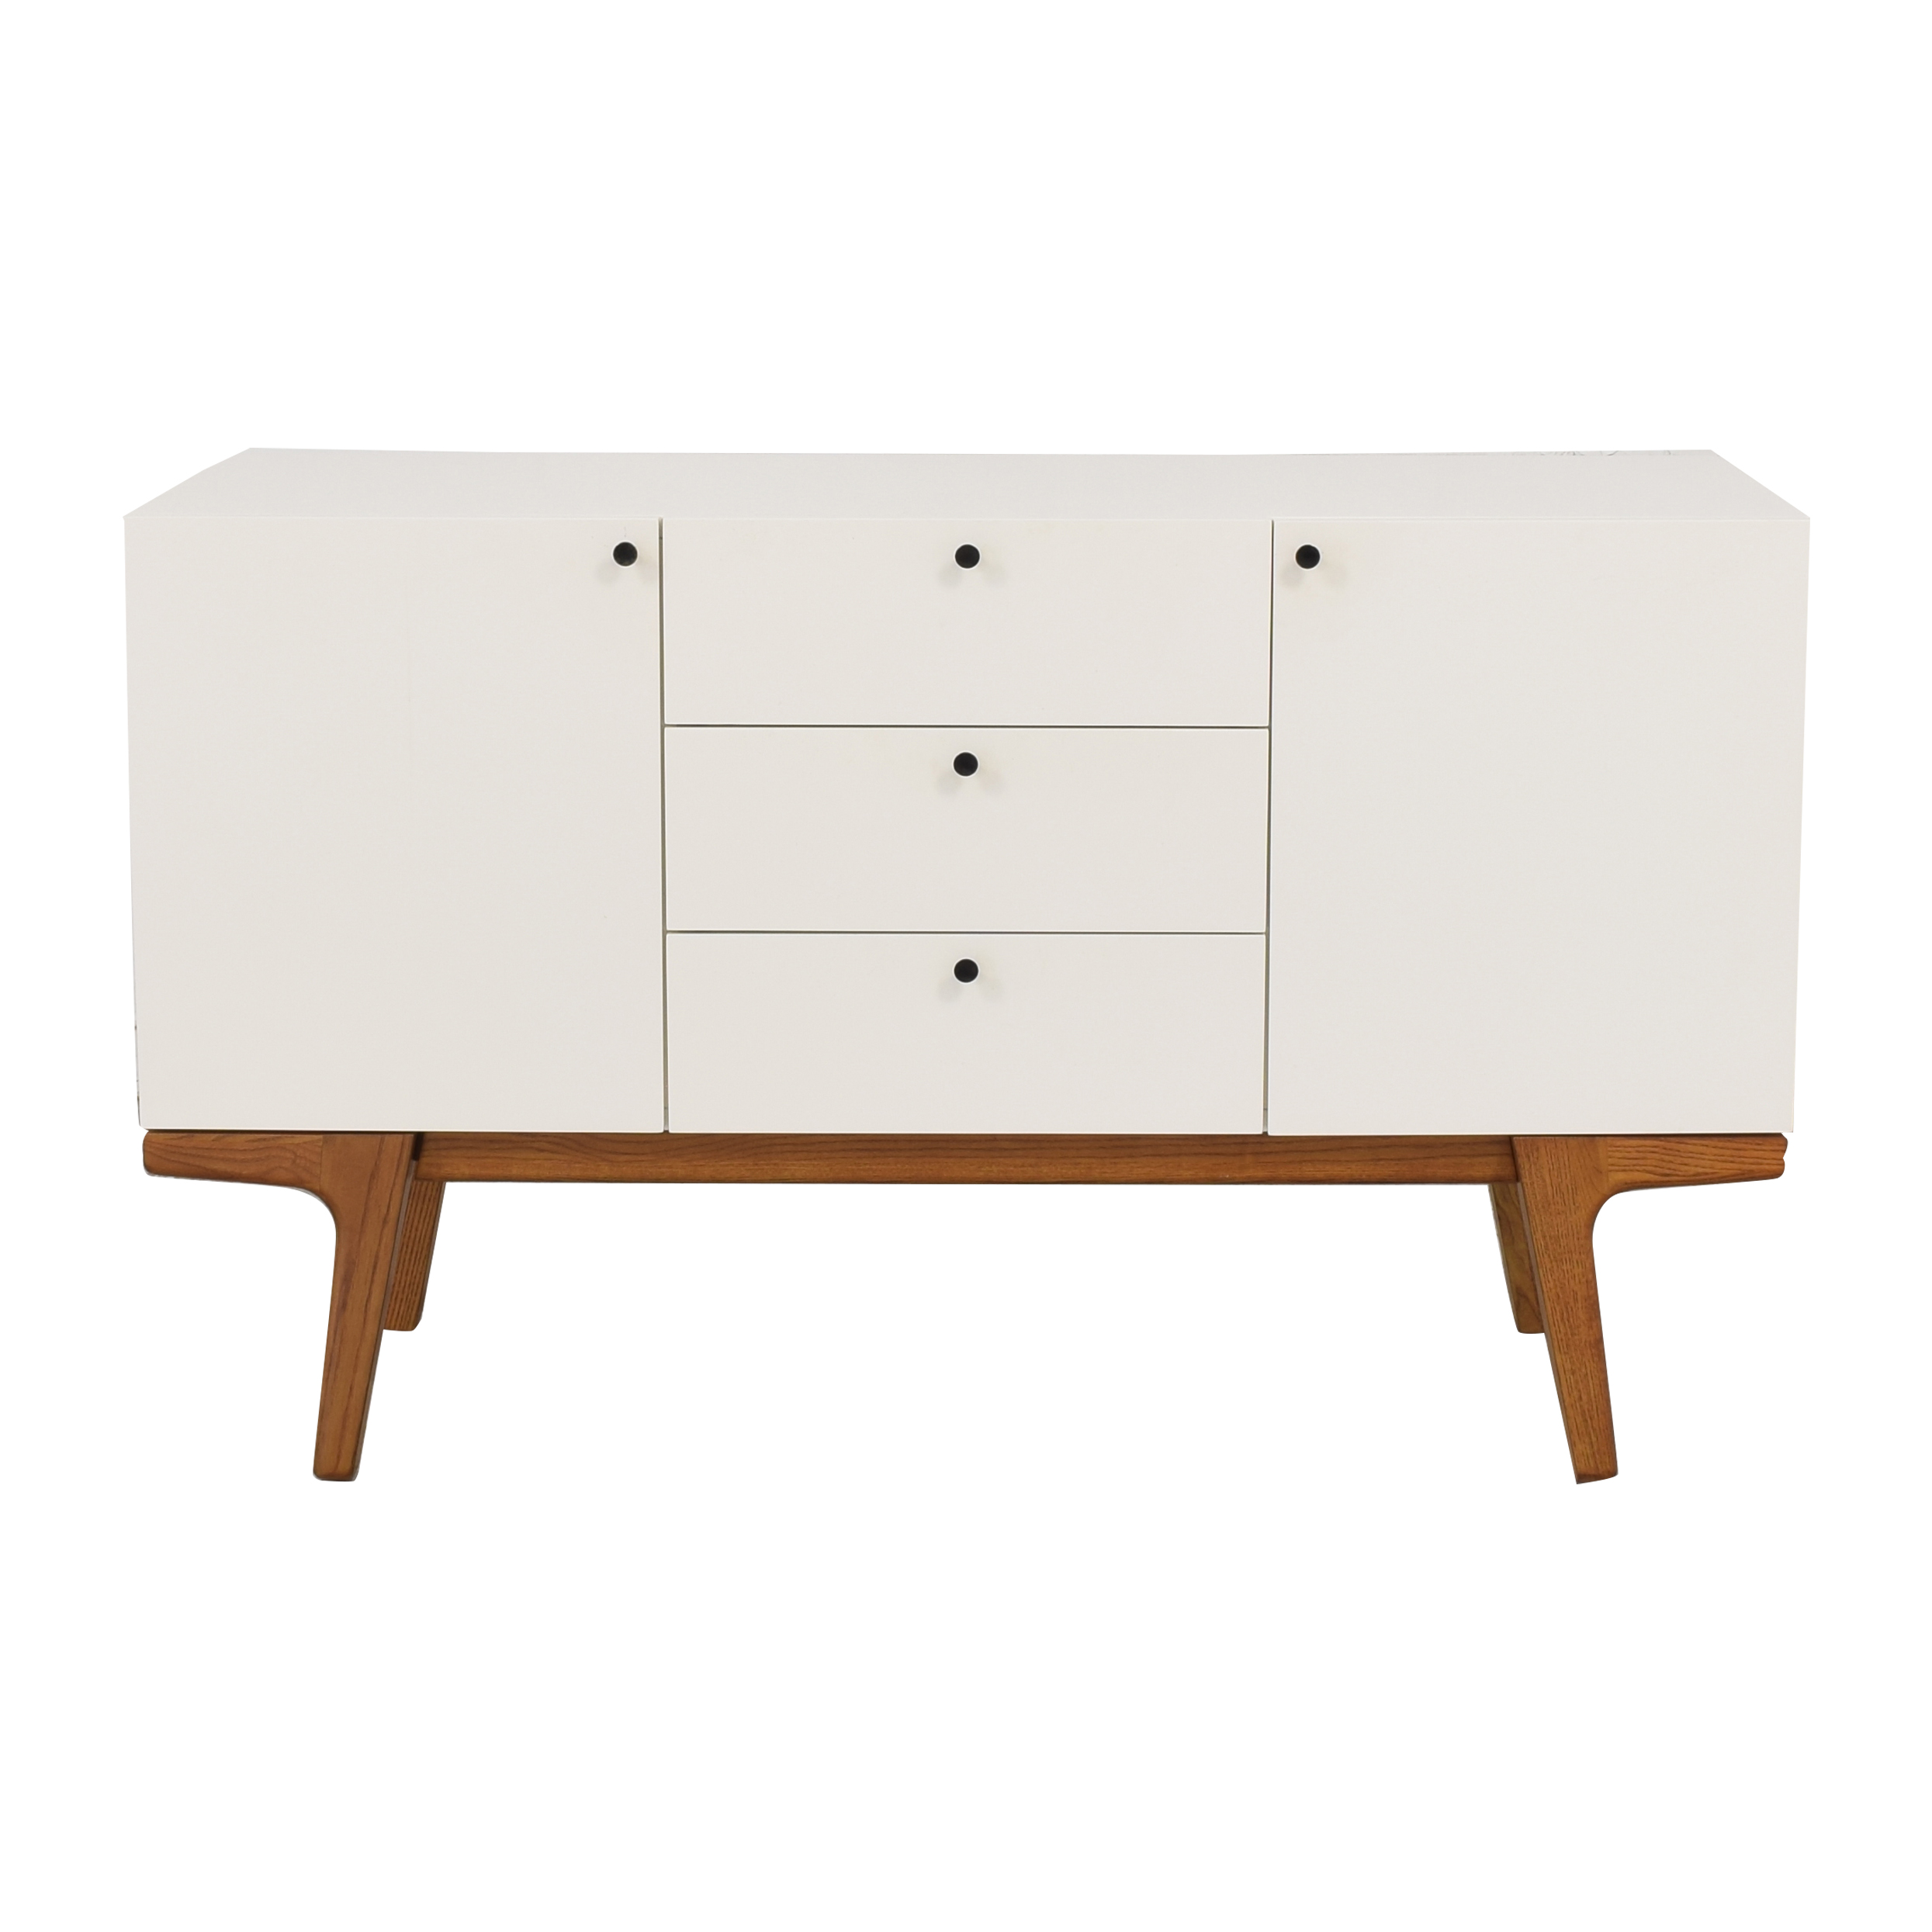 West Elm West Elm Modern Media Console for sale